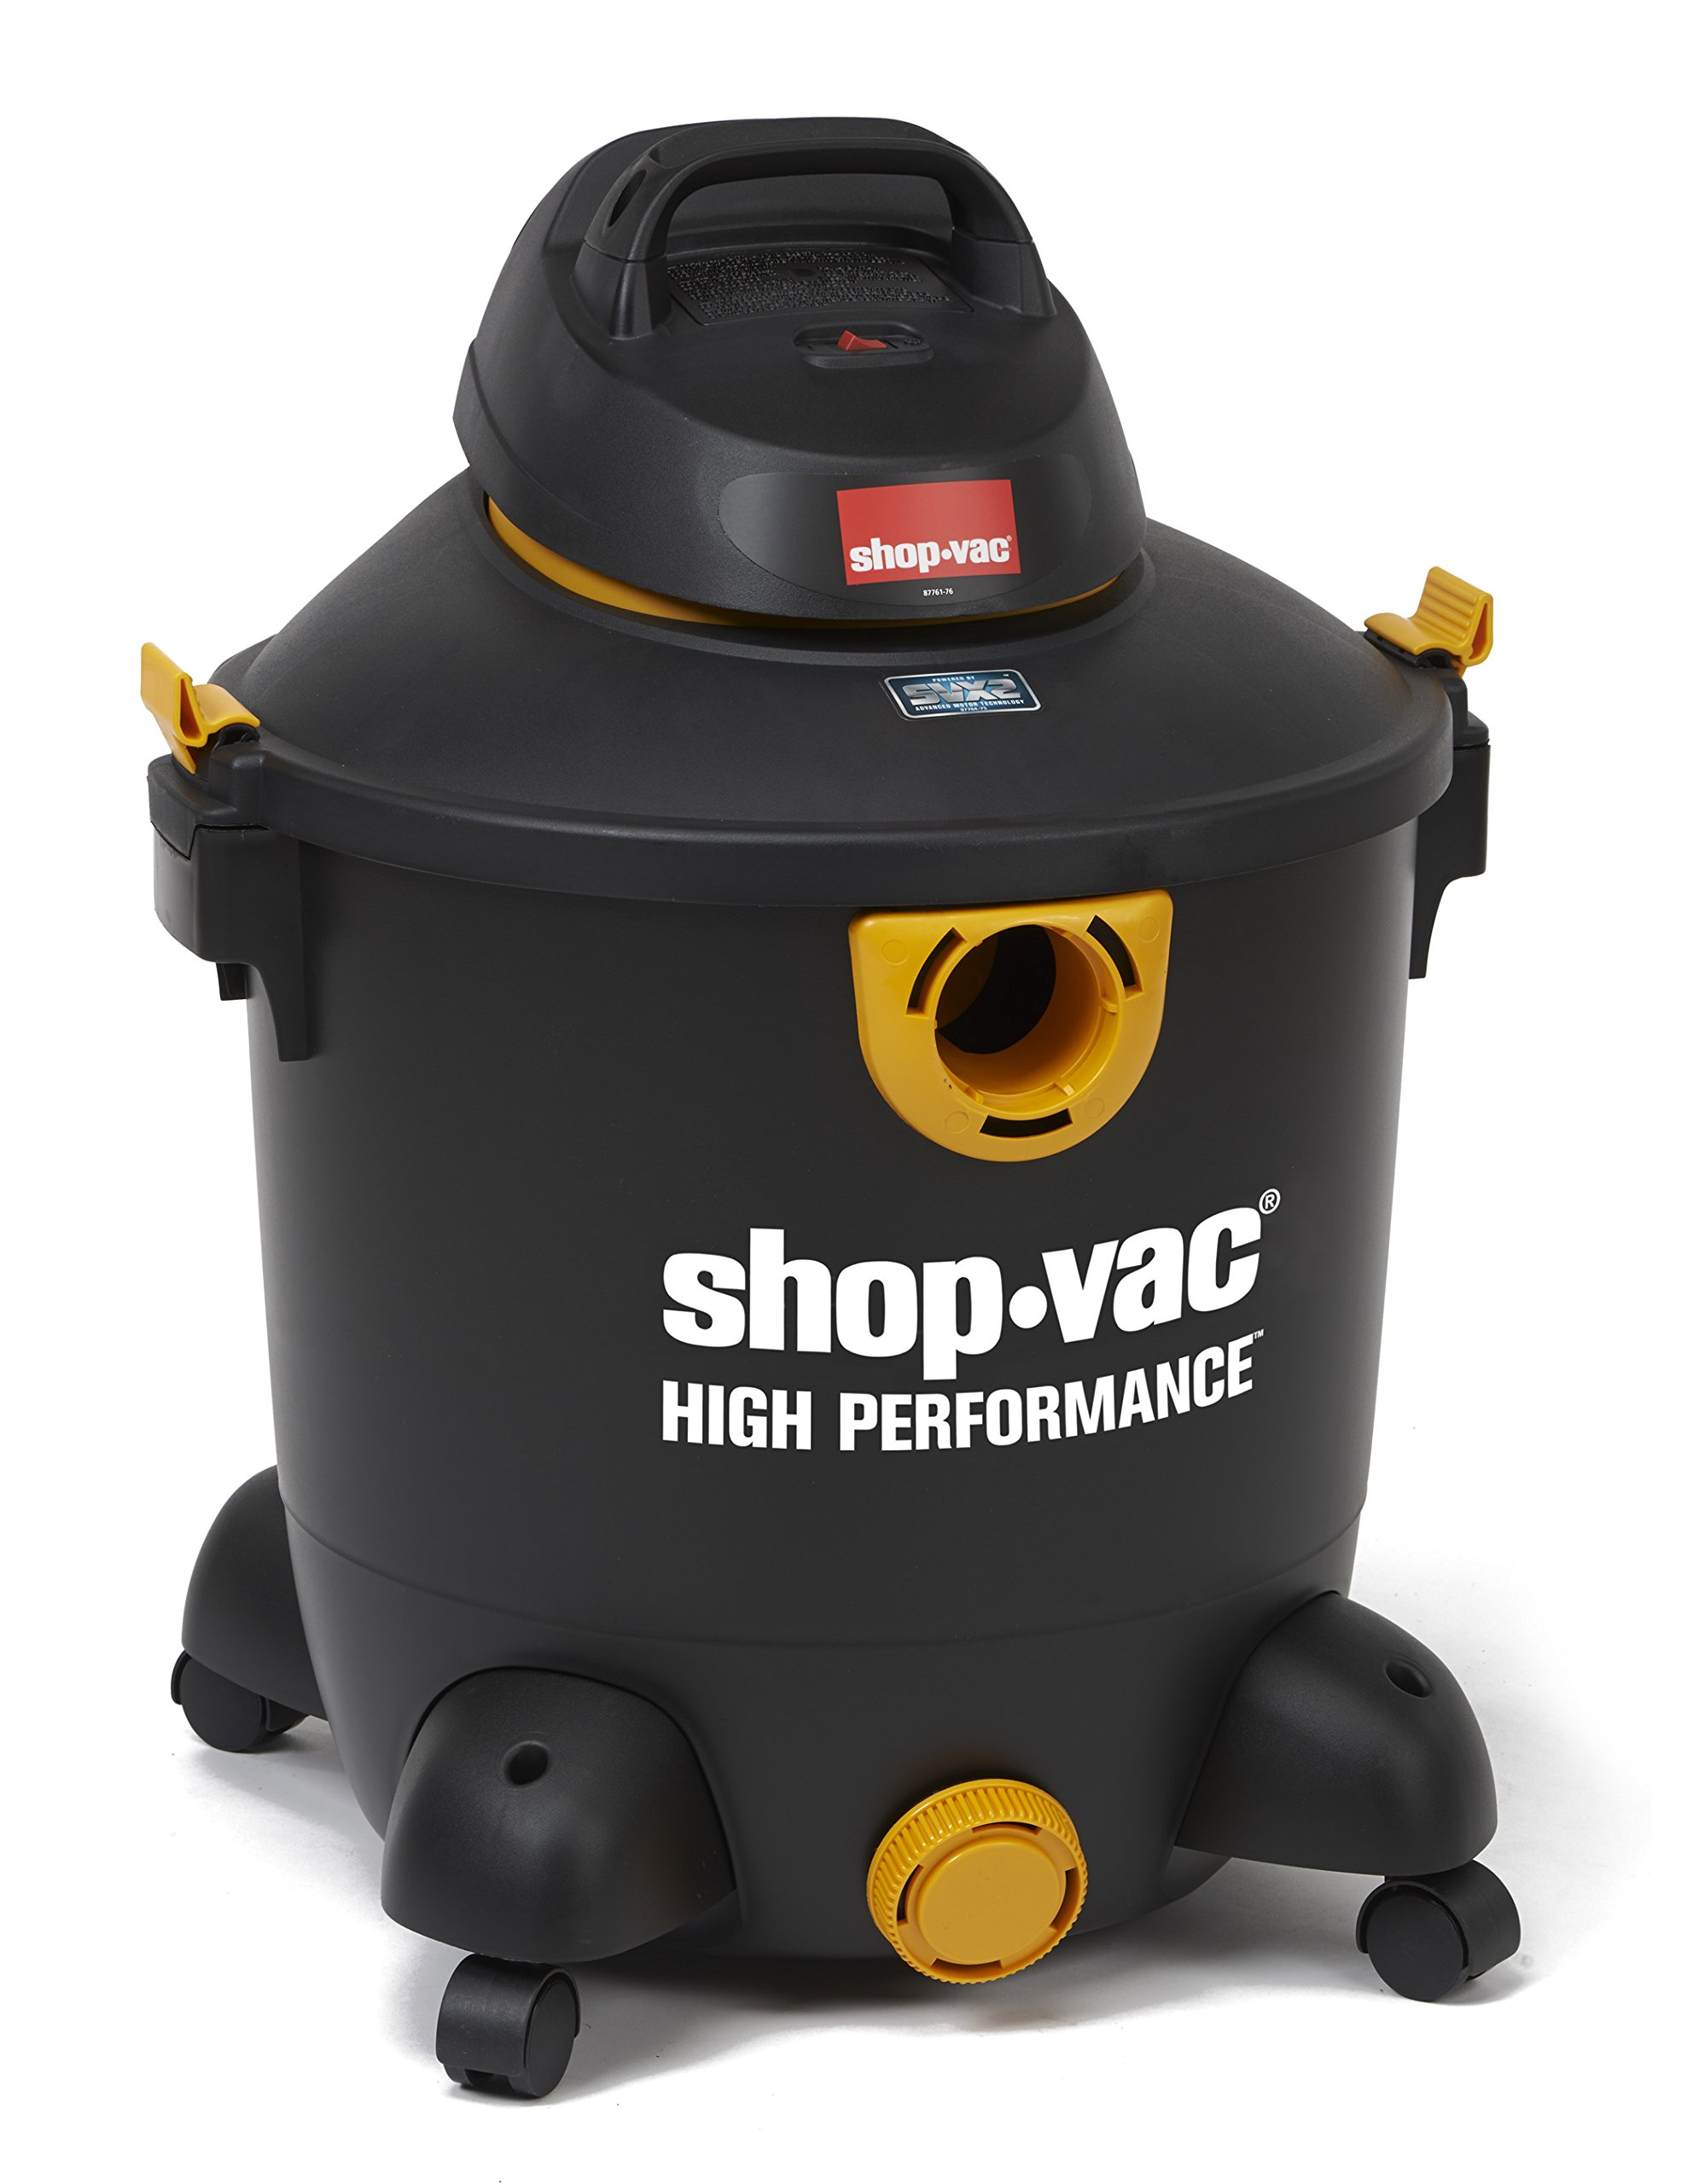 Shop-Vac 5987300 12 gallon 5.5 Peak HP SVX2 High Performance Series Wet Dry Vacuum Black/Yellow by Shop-Vac